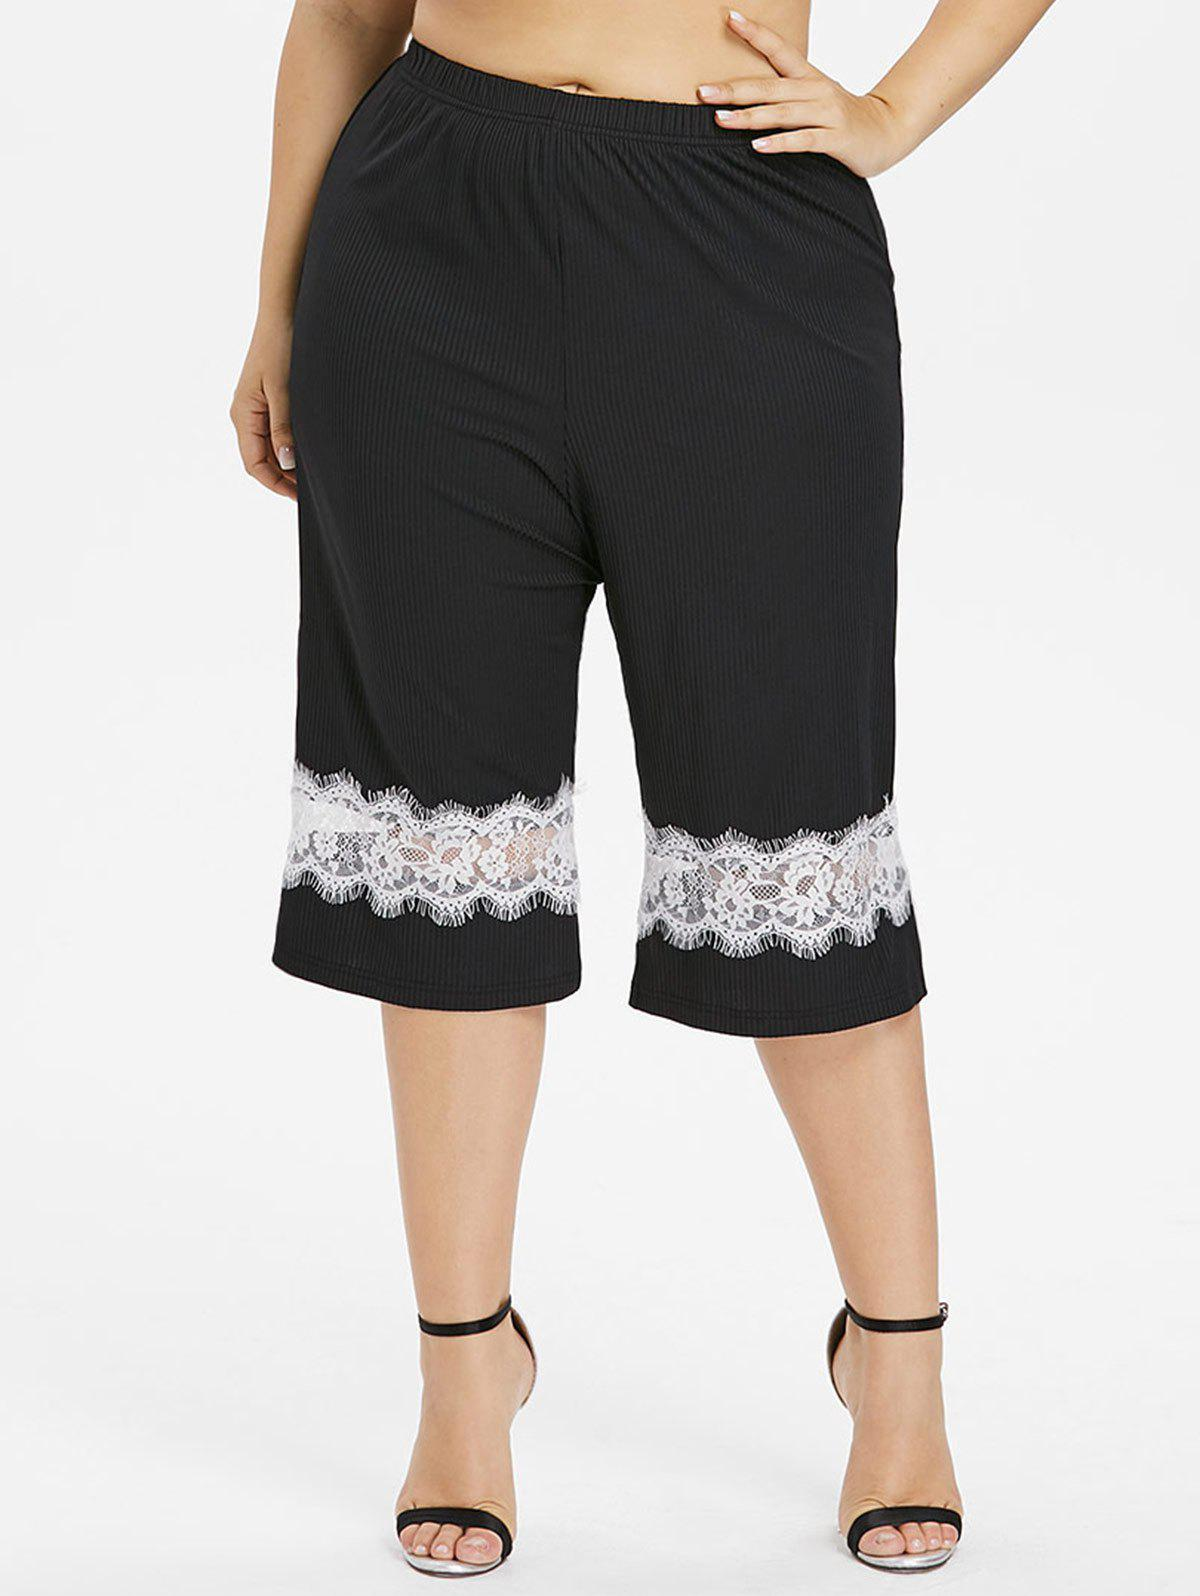 Shop Plus Size Eyelash Lace Insert Capri Pants